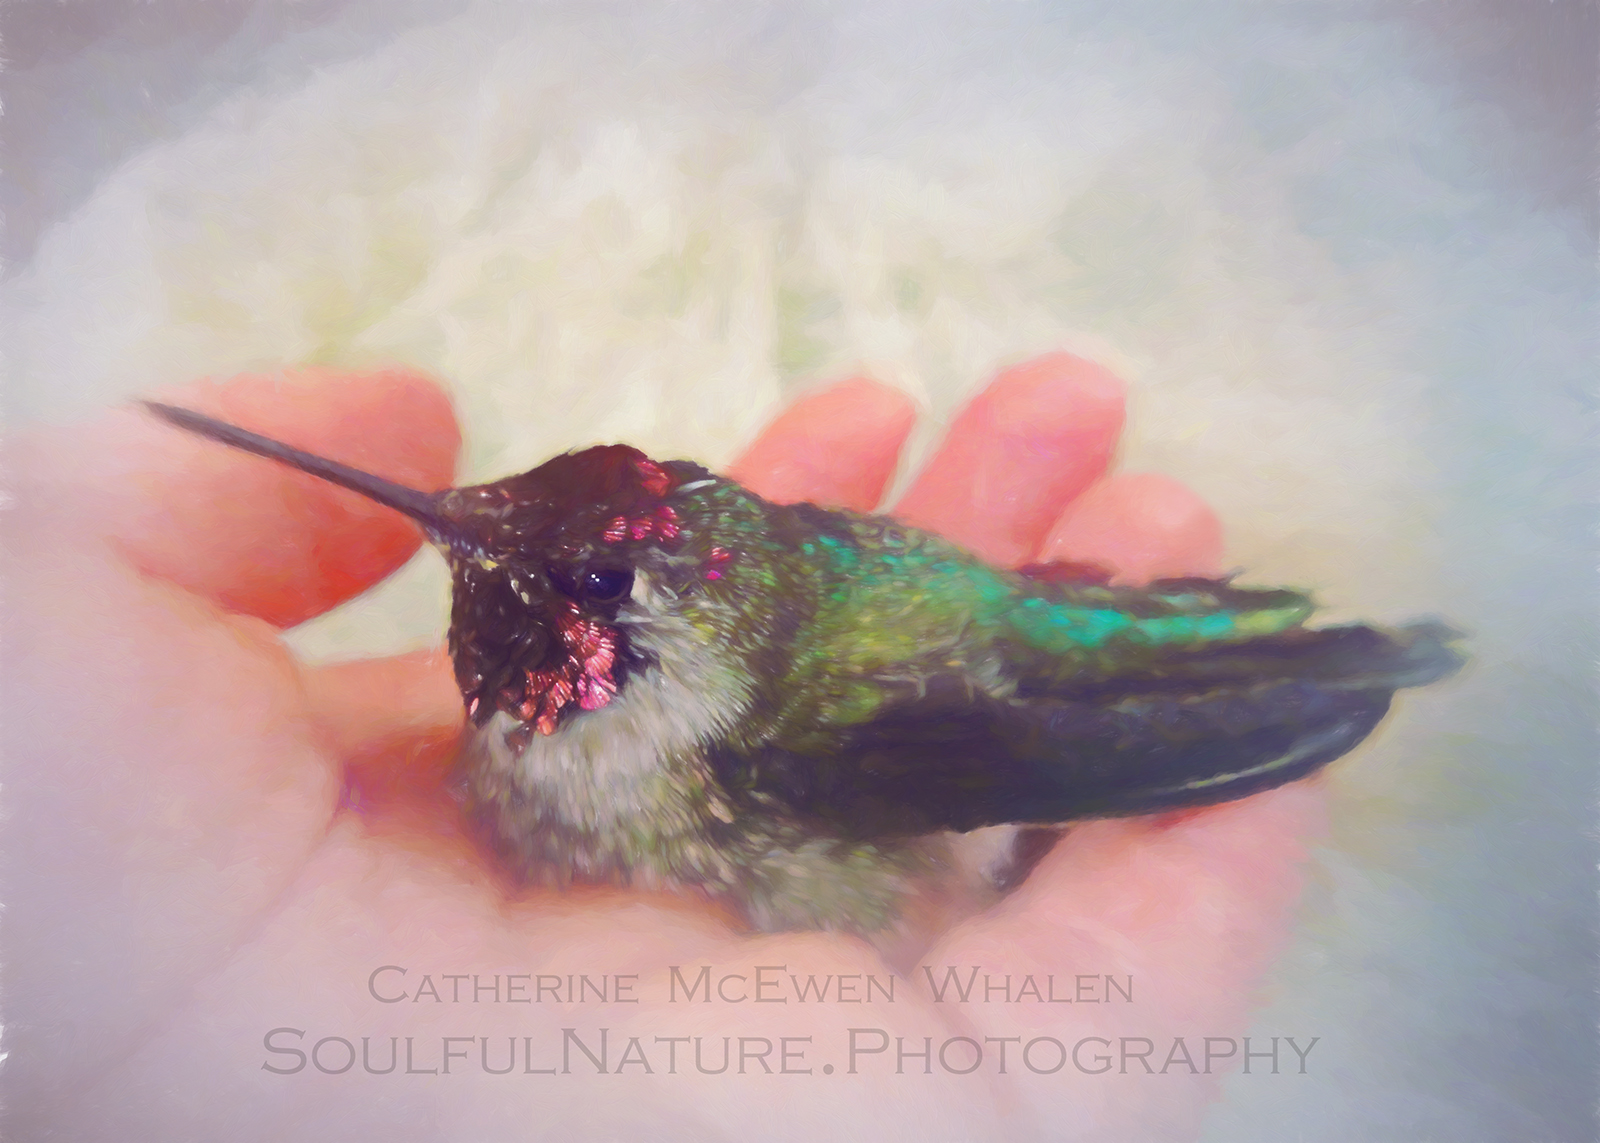 090717_Hummer_7487-inMyHand_5x7-color-adjustment-Paint-a.jpg